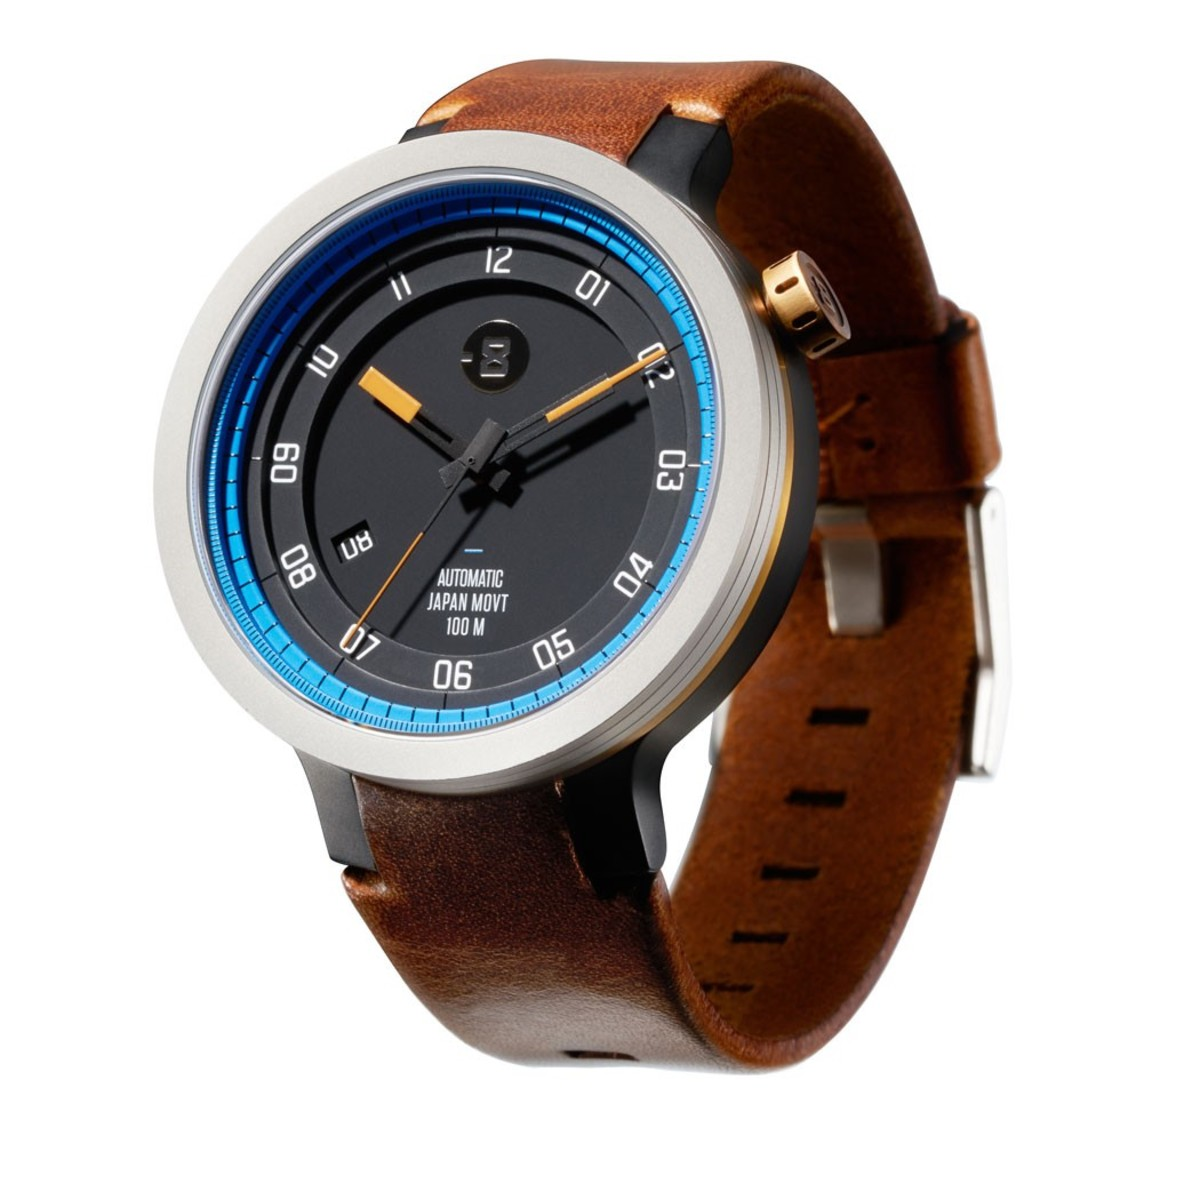 the-minus-8-layer-leather-watch-3.jpg